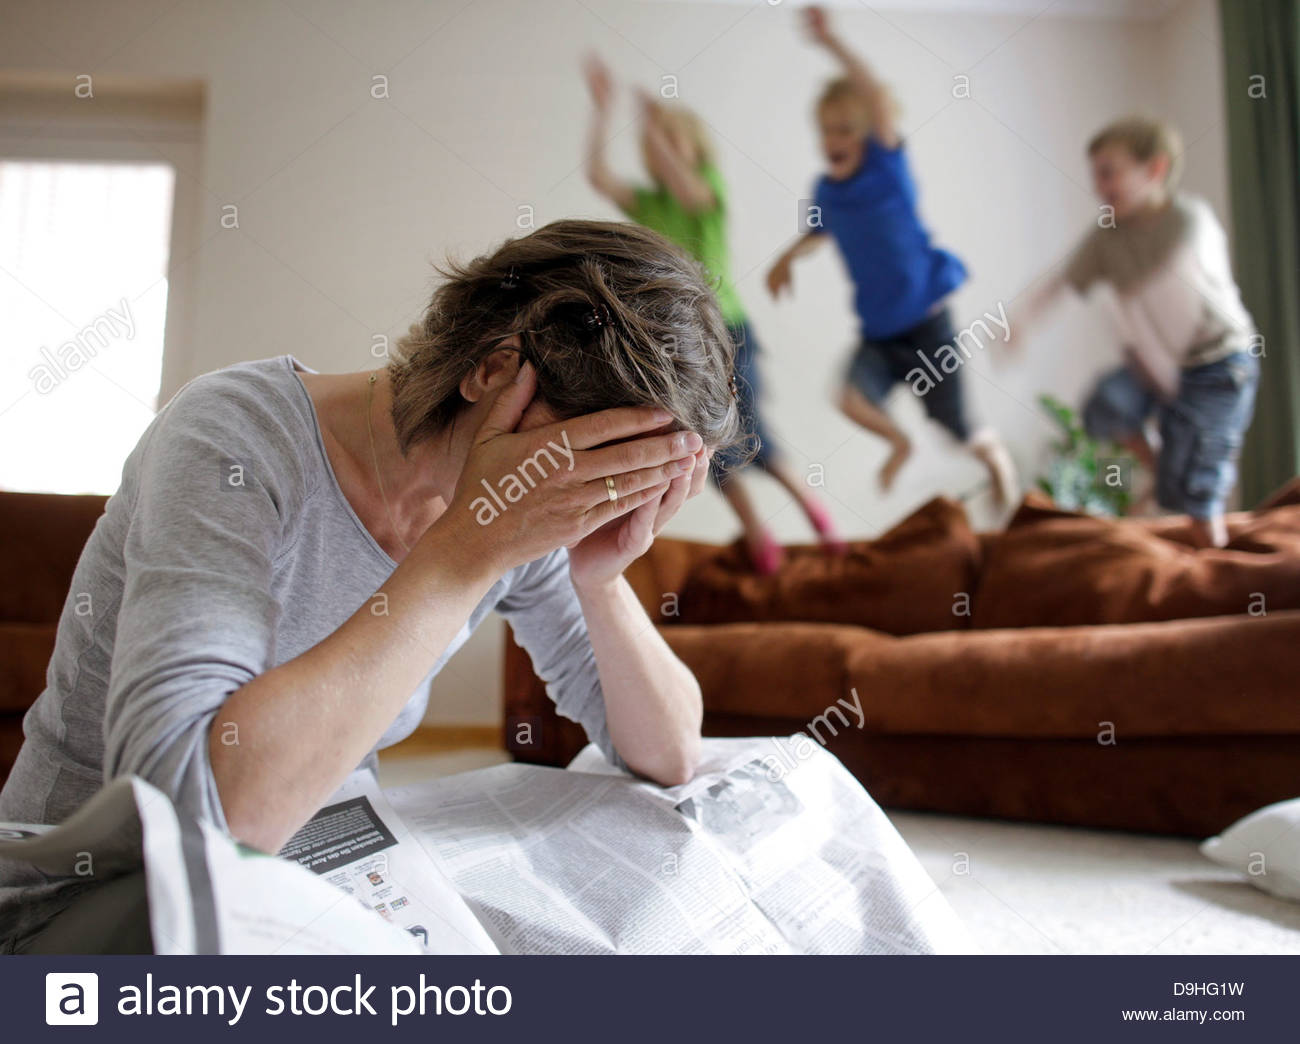 Frustrated woman with her children playing in the background - Stock Image